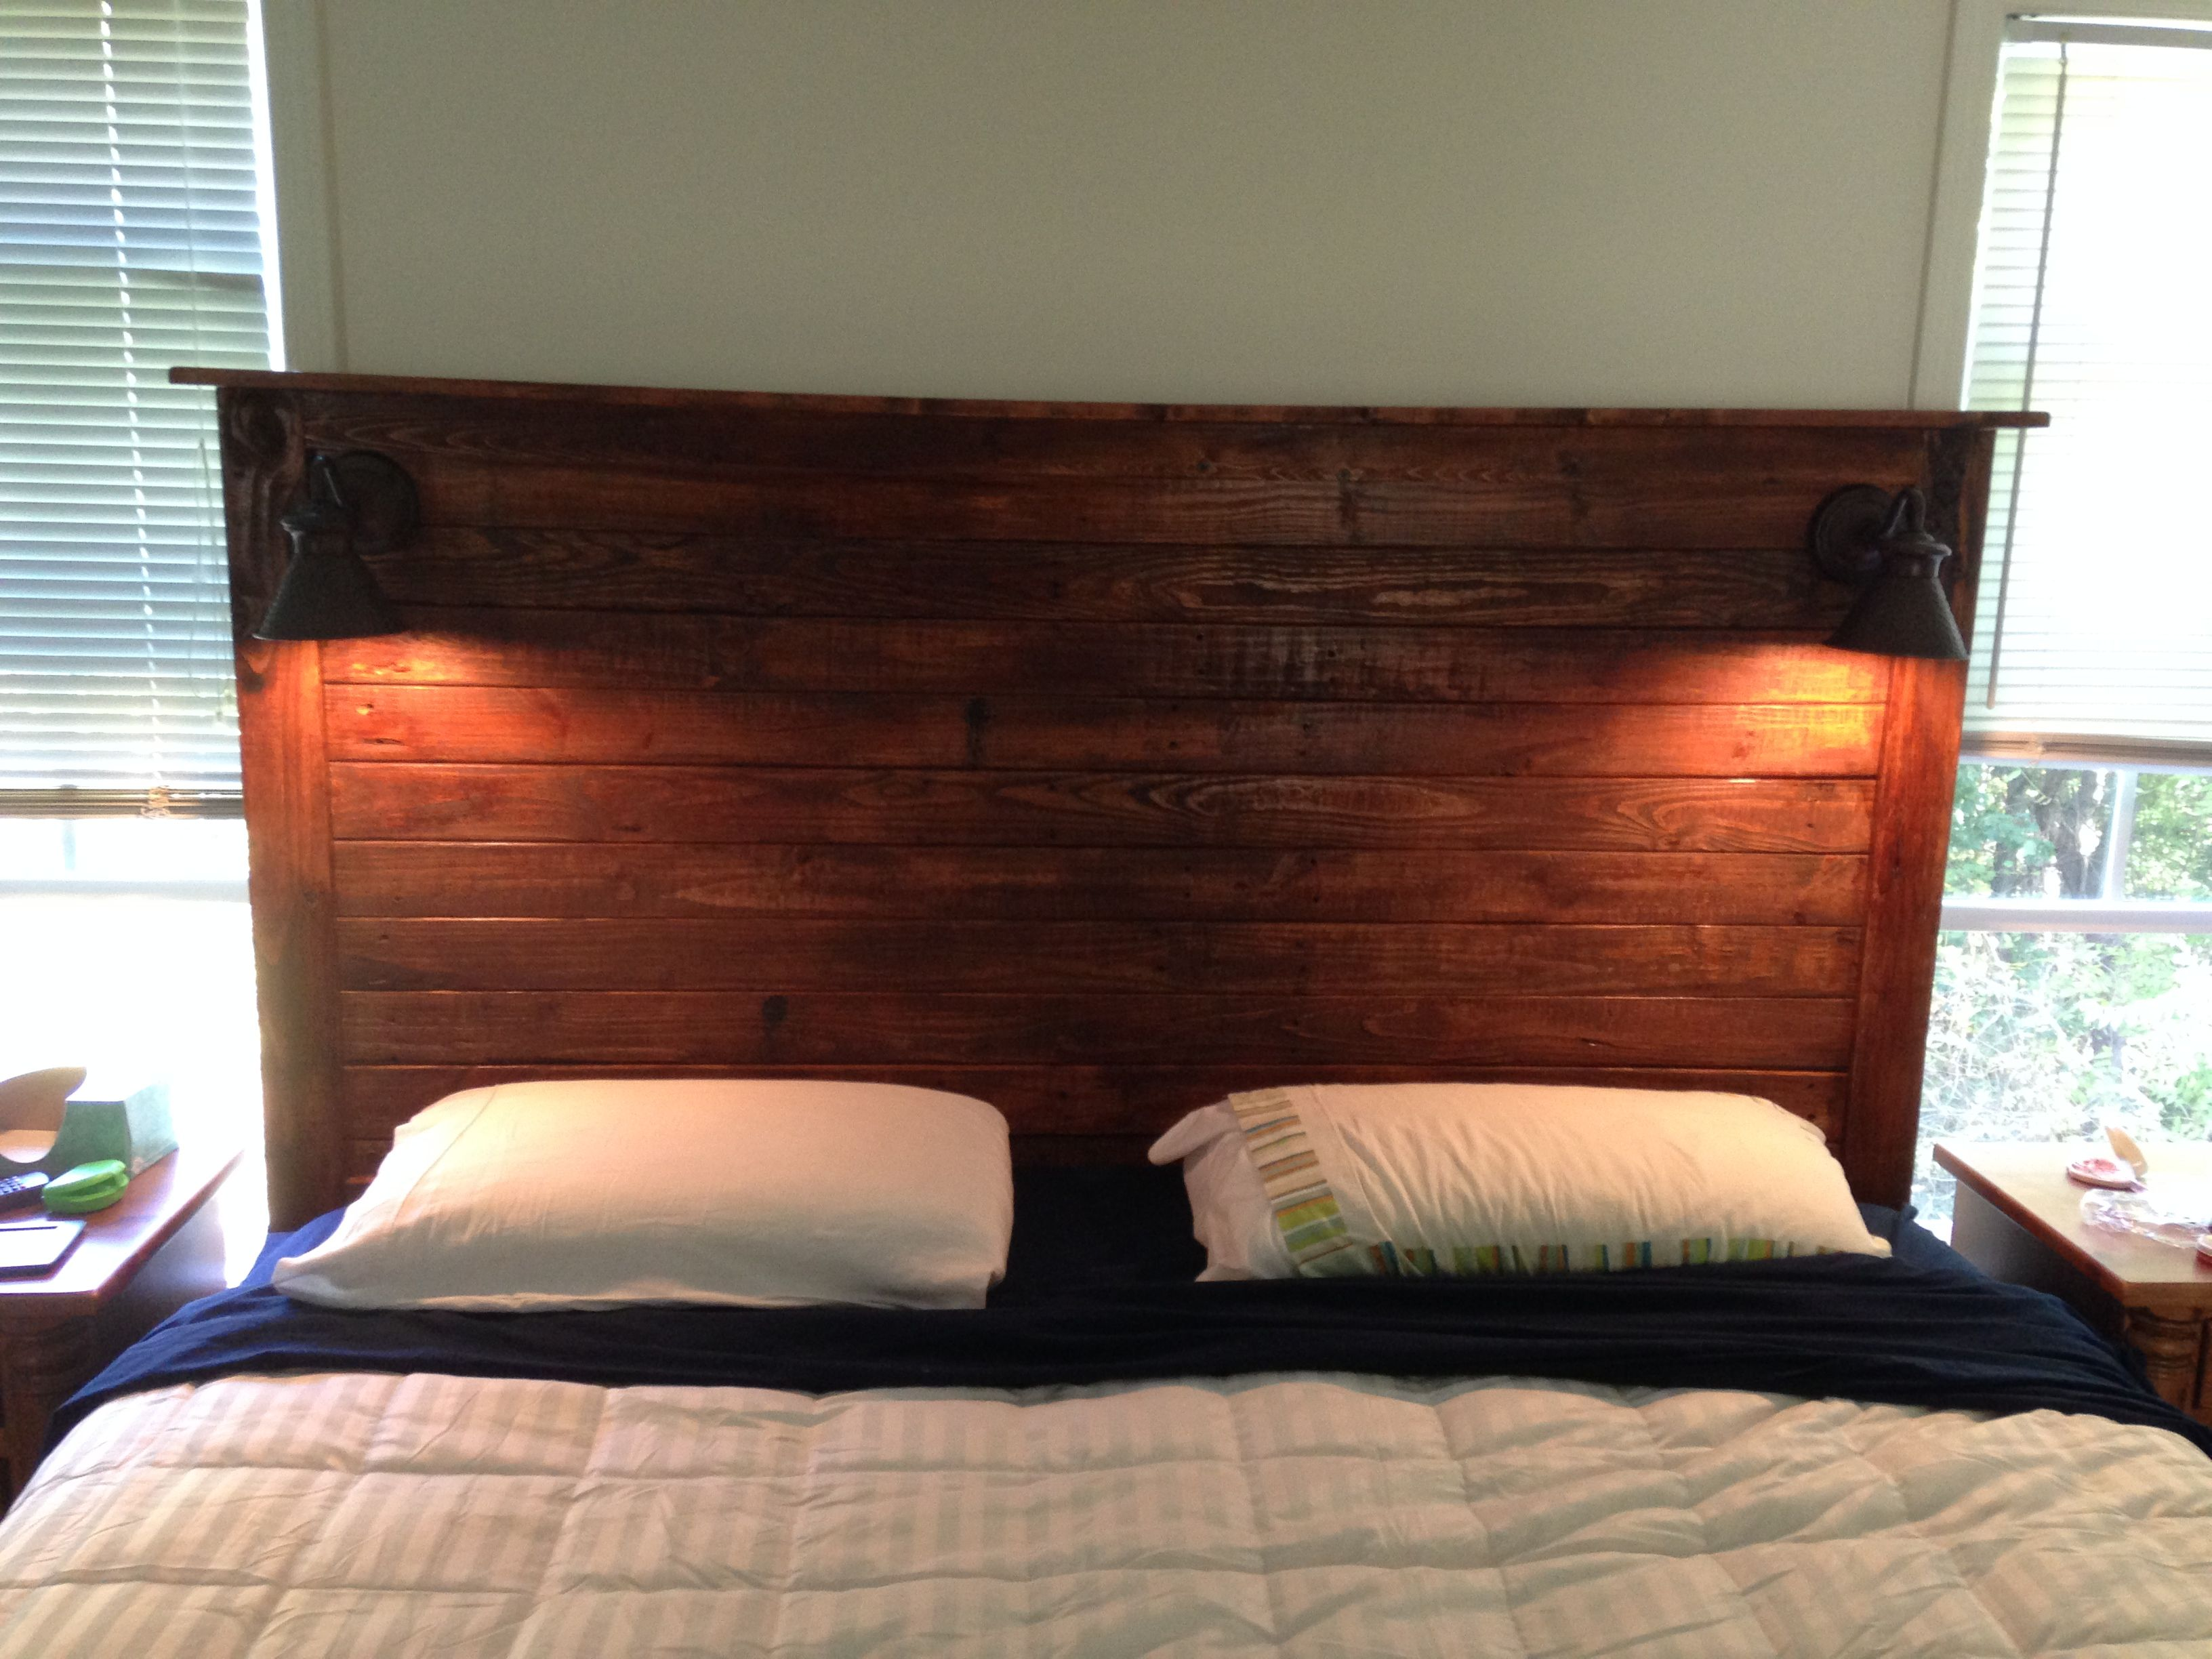 Bed Reading Lamp Headboard King Size Headboard Made From The Pallets That The Bed